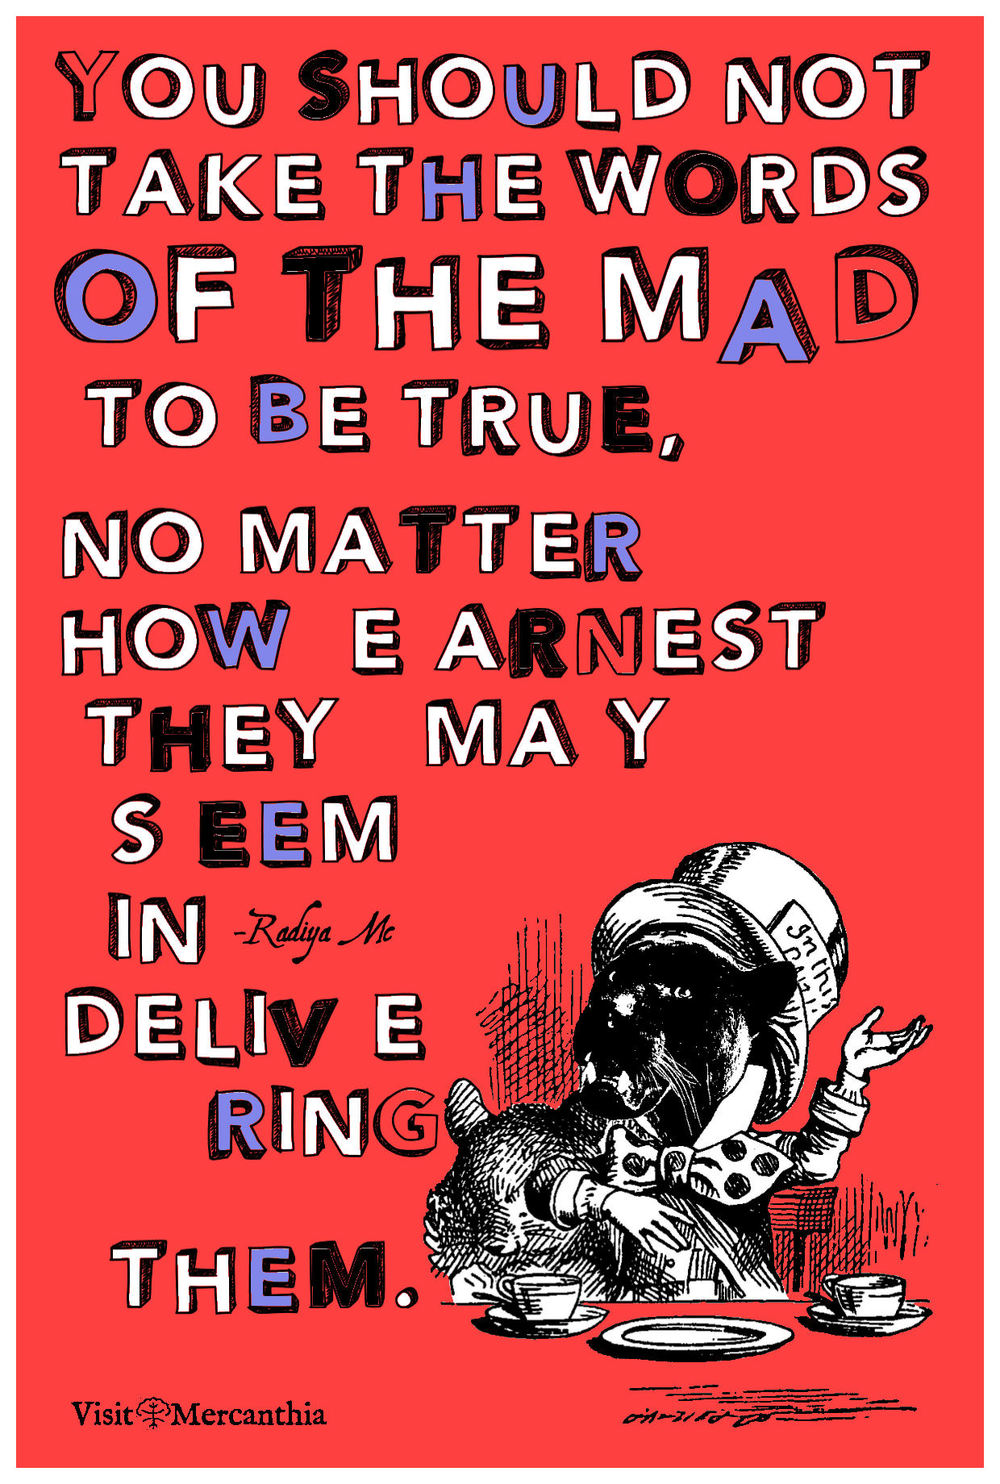 Words of the mad...